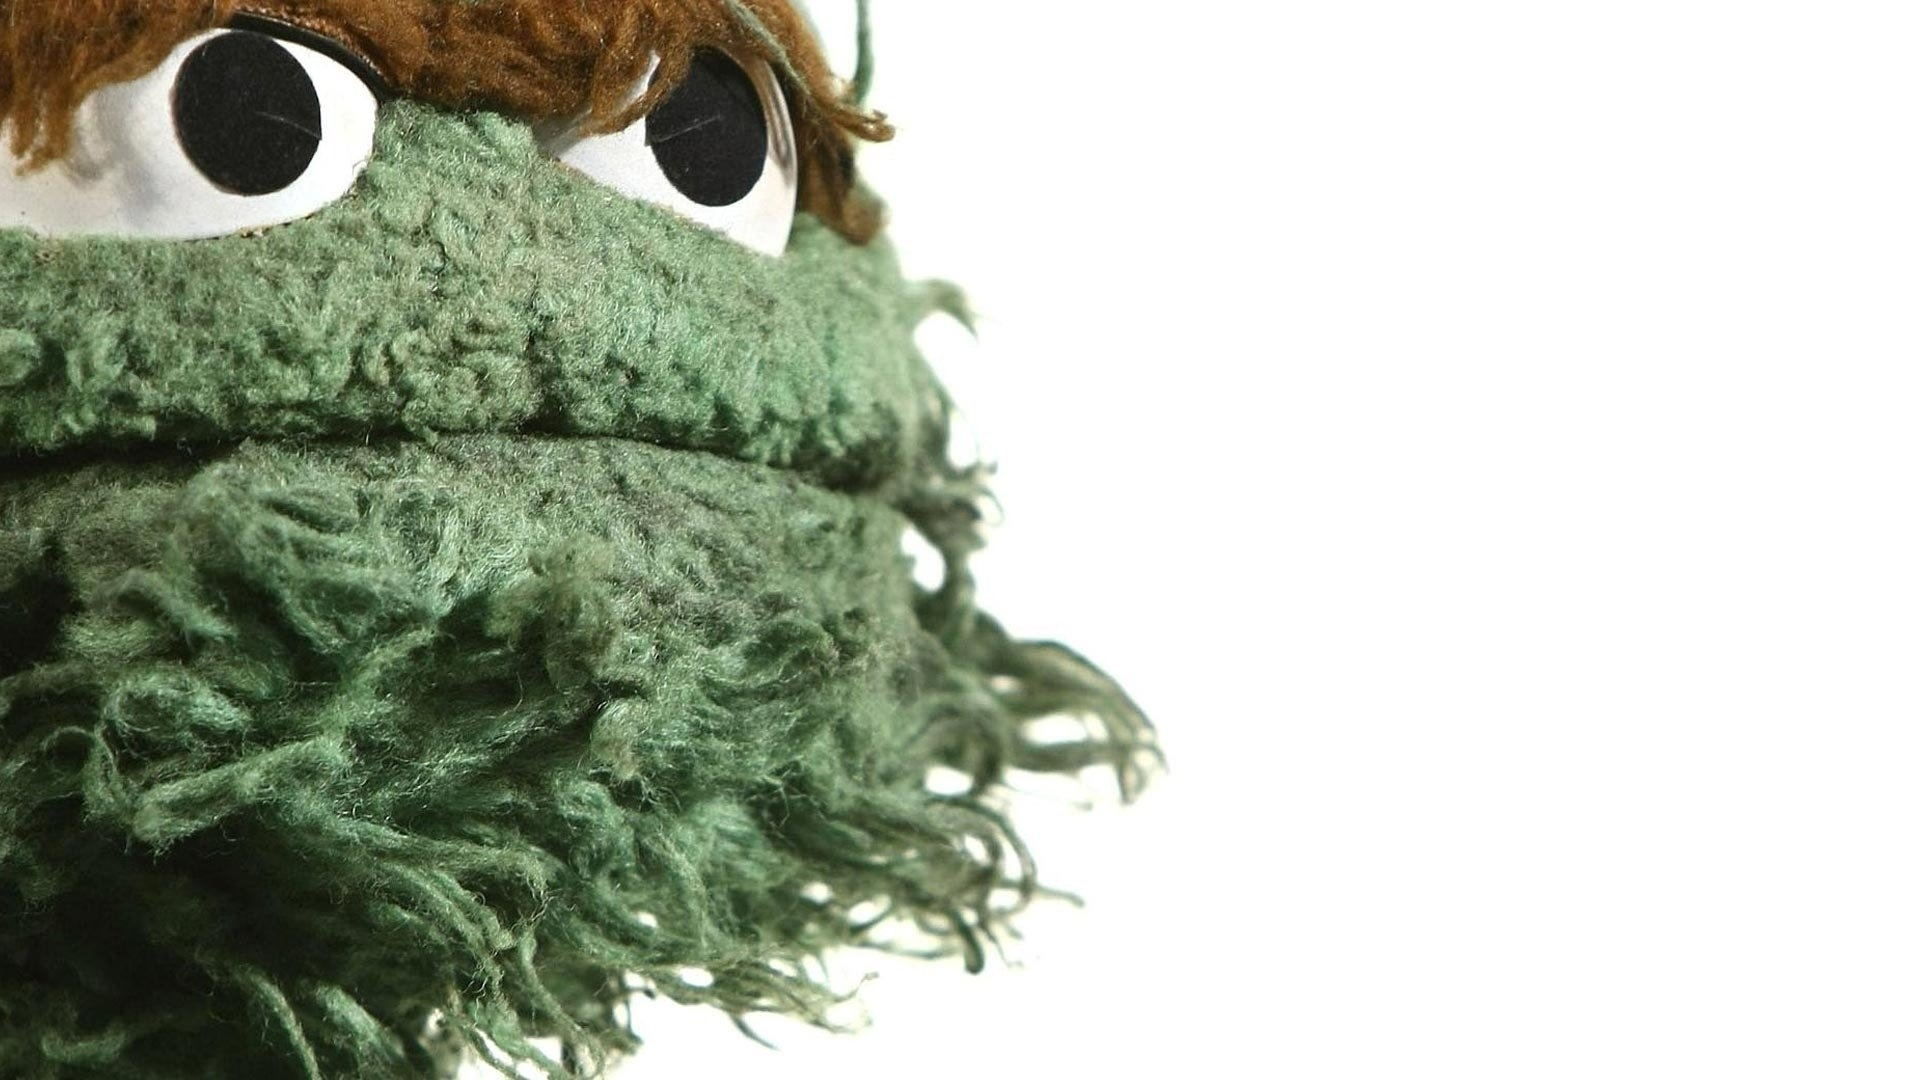 oscar the grouch - sesame street 349053 - walldevil